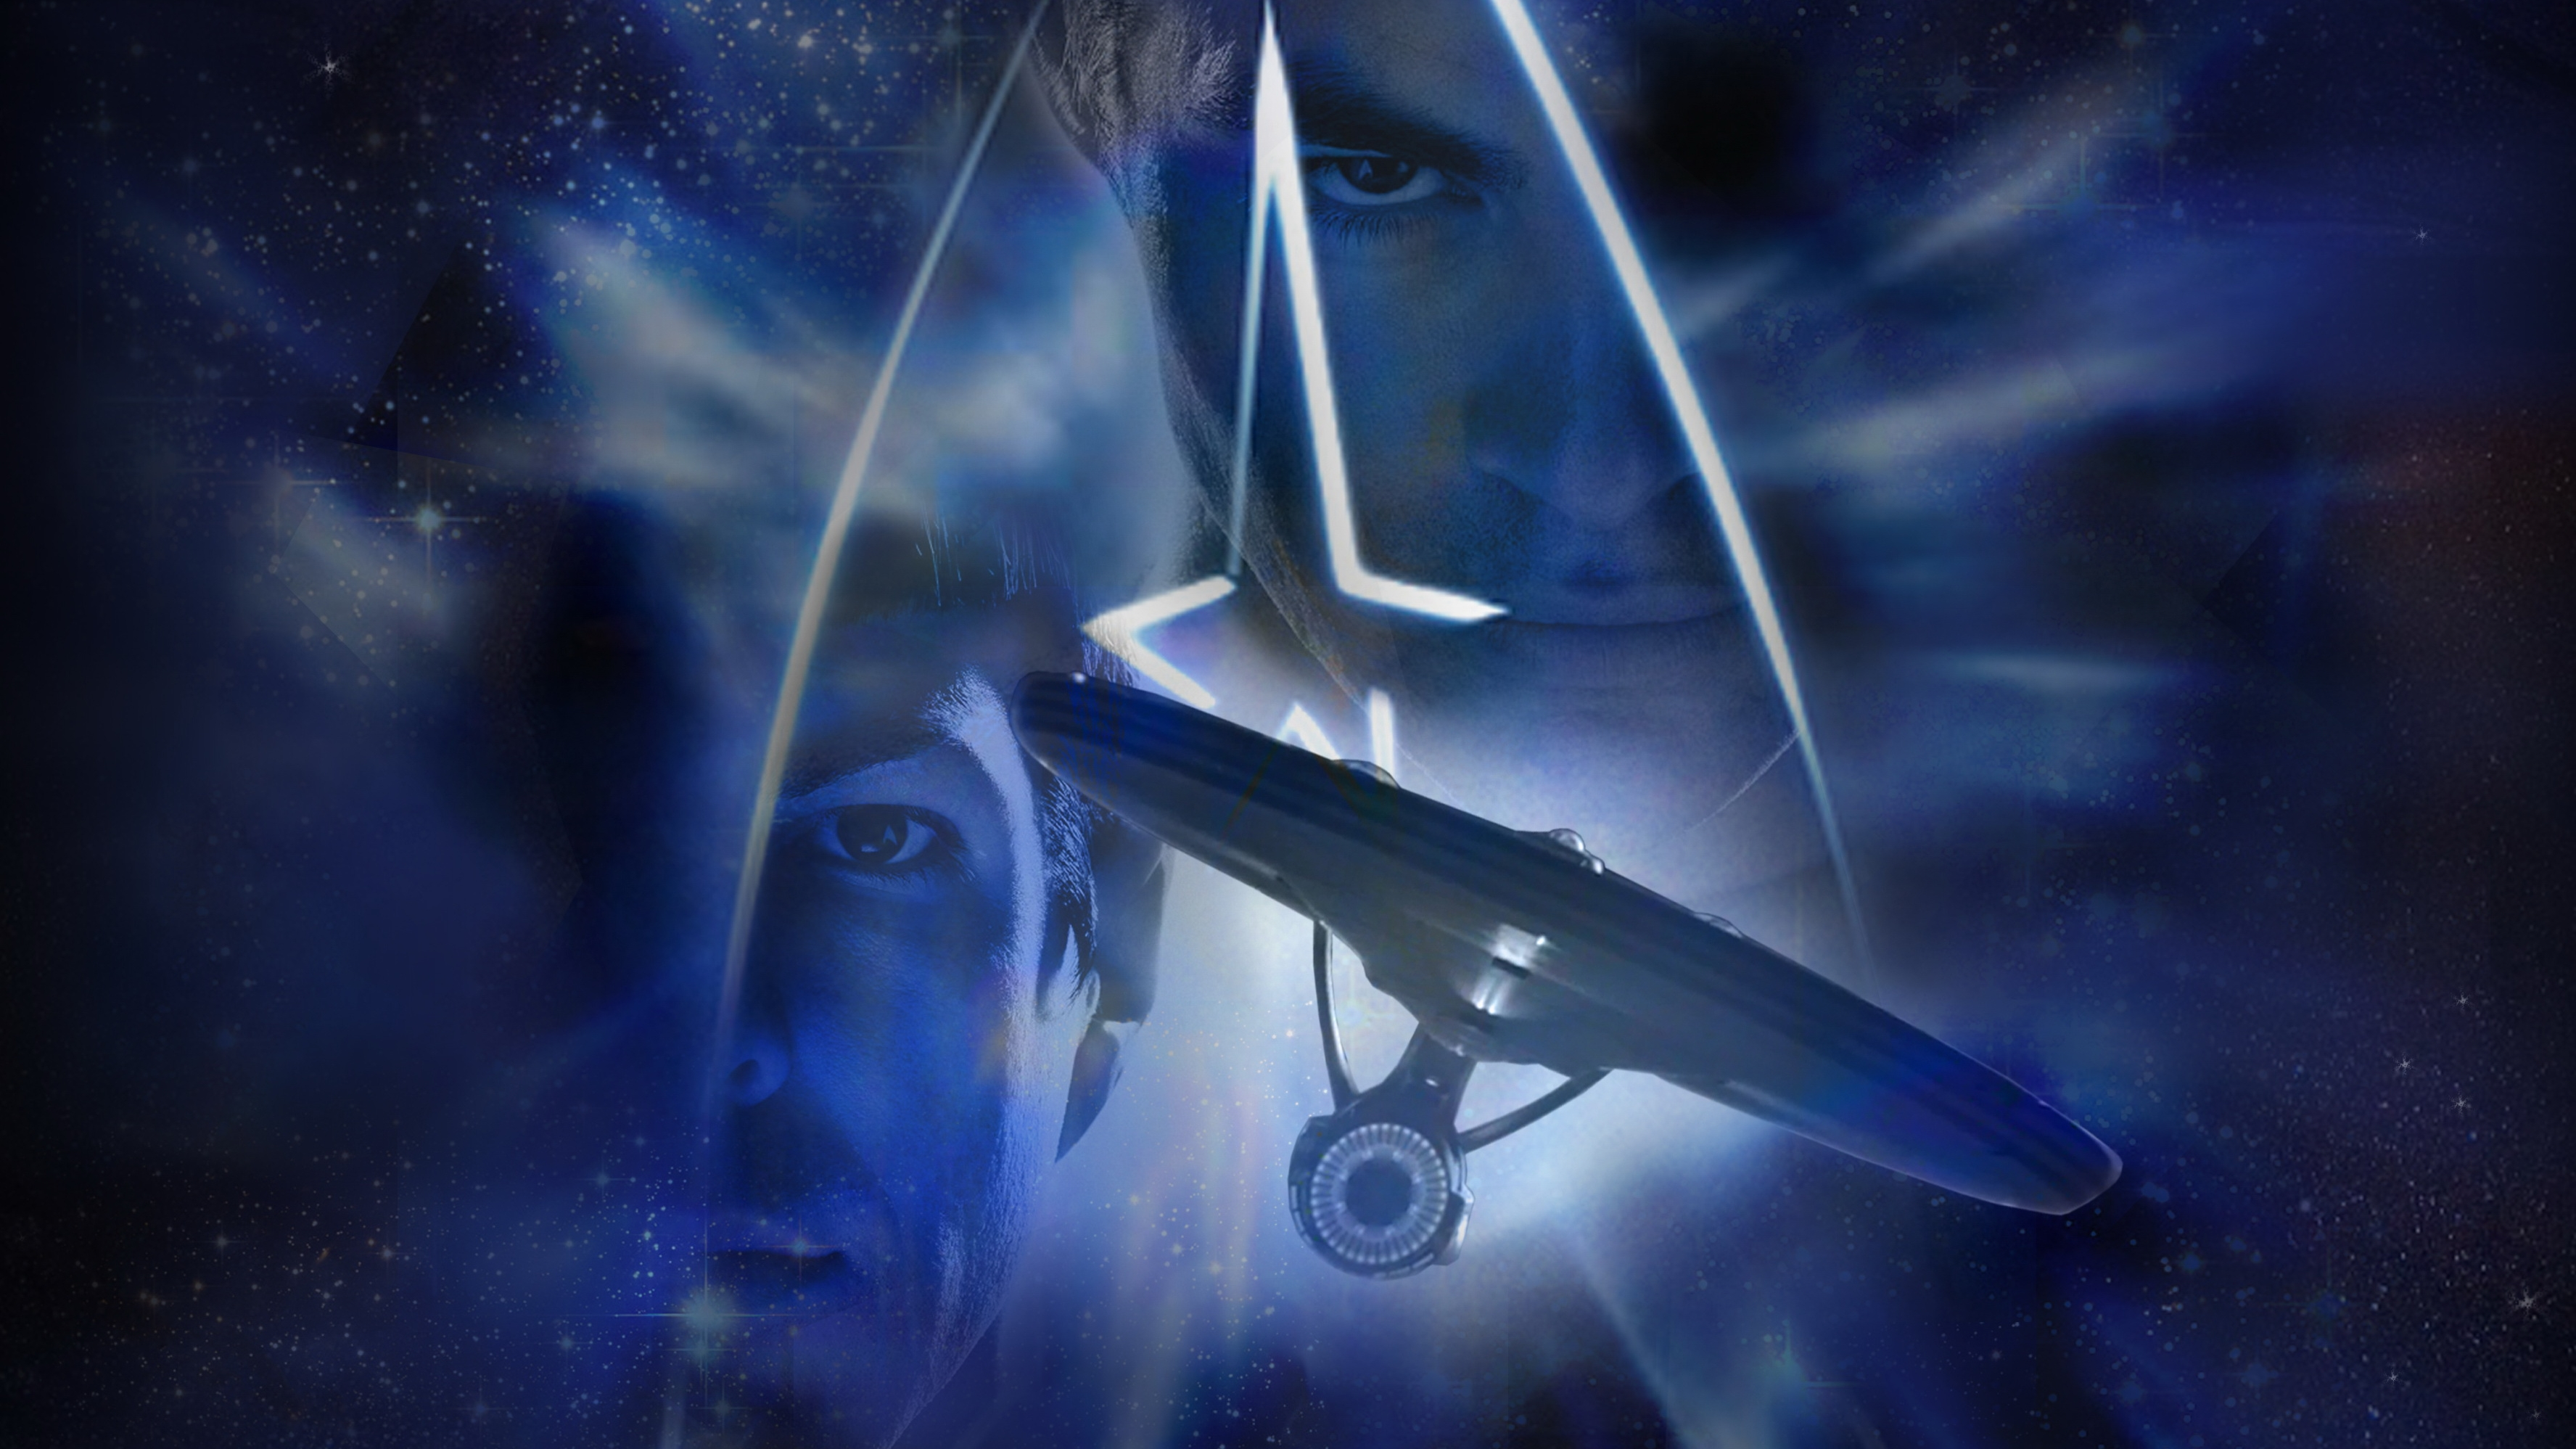 75 Star Trek Into Darkness Hd Wallpapers Background Images